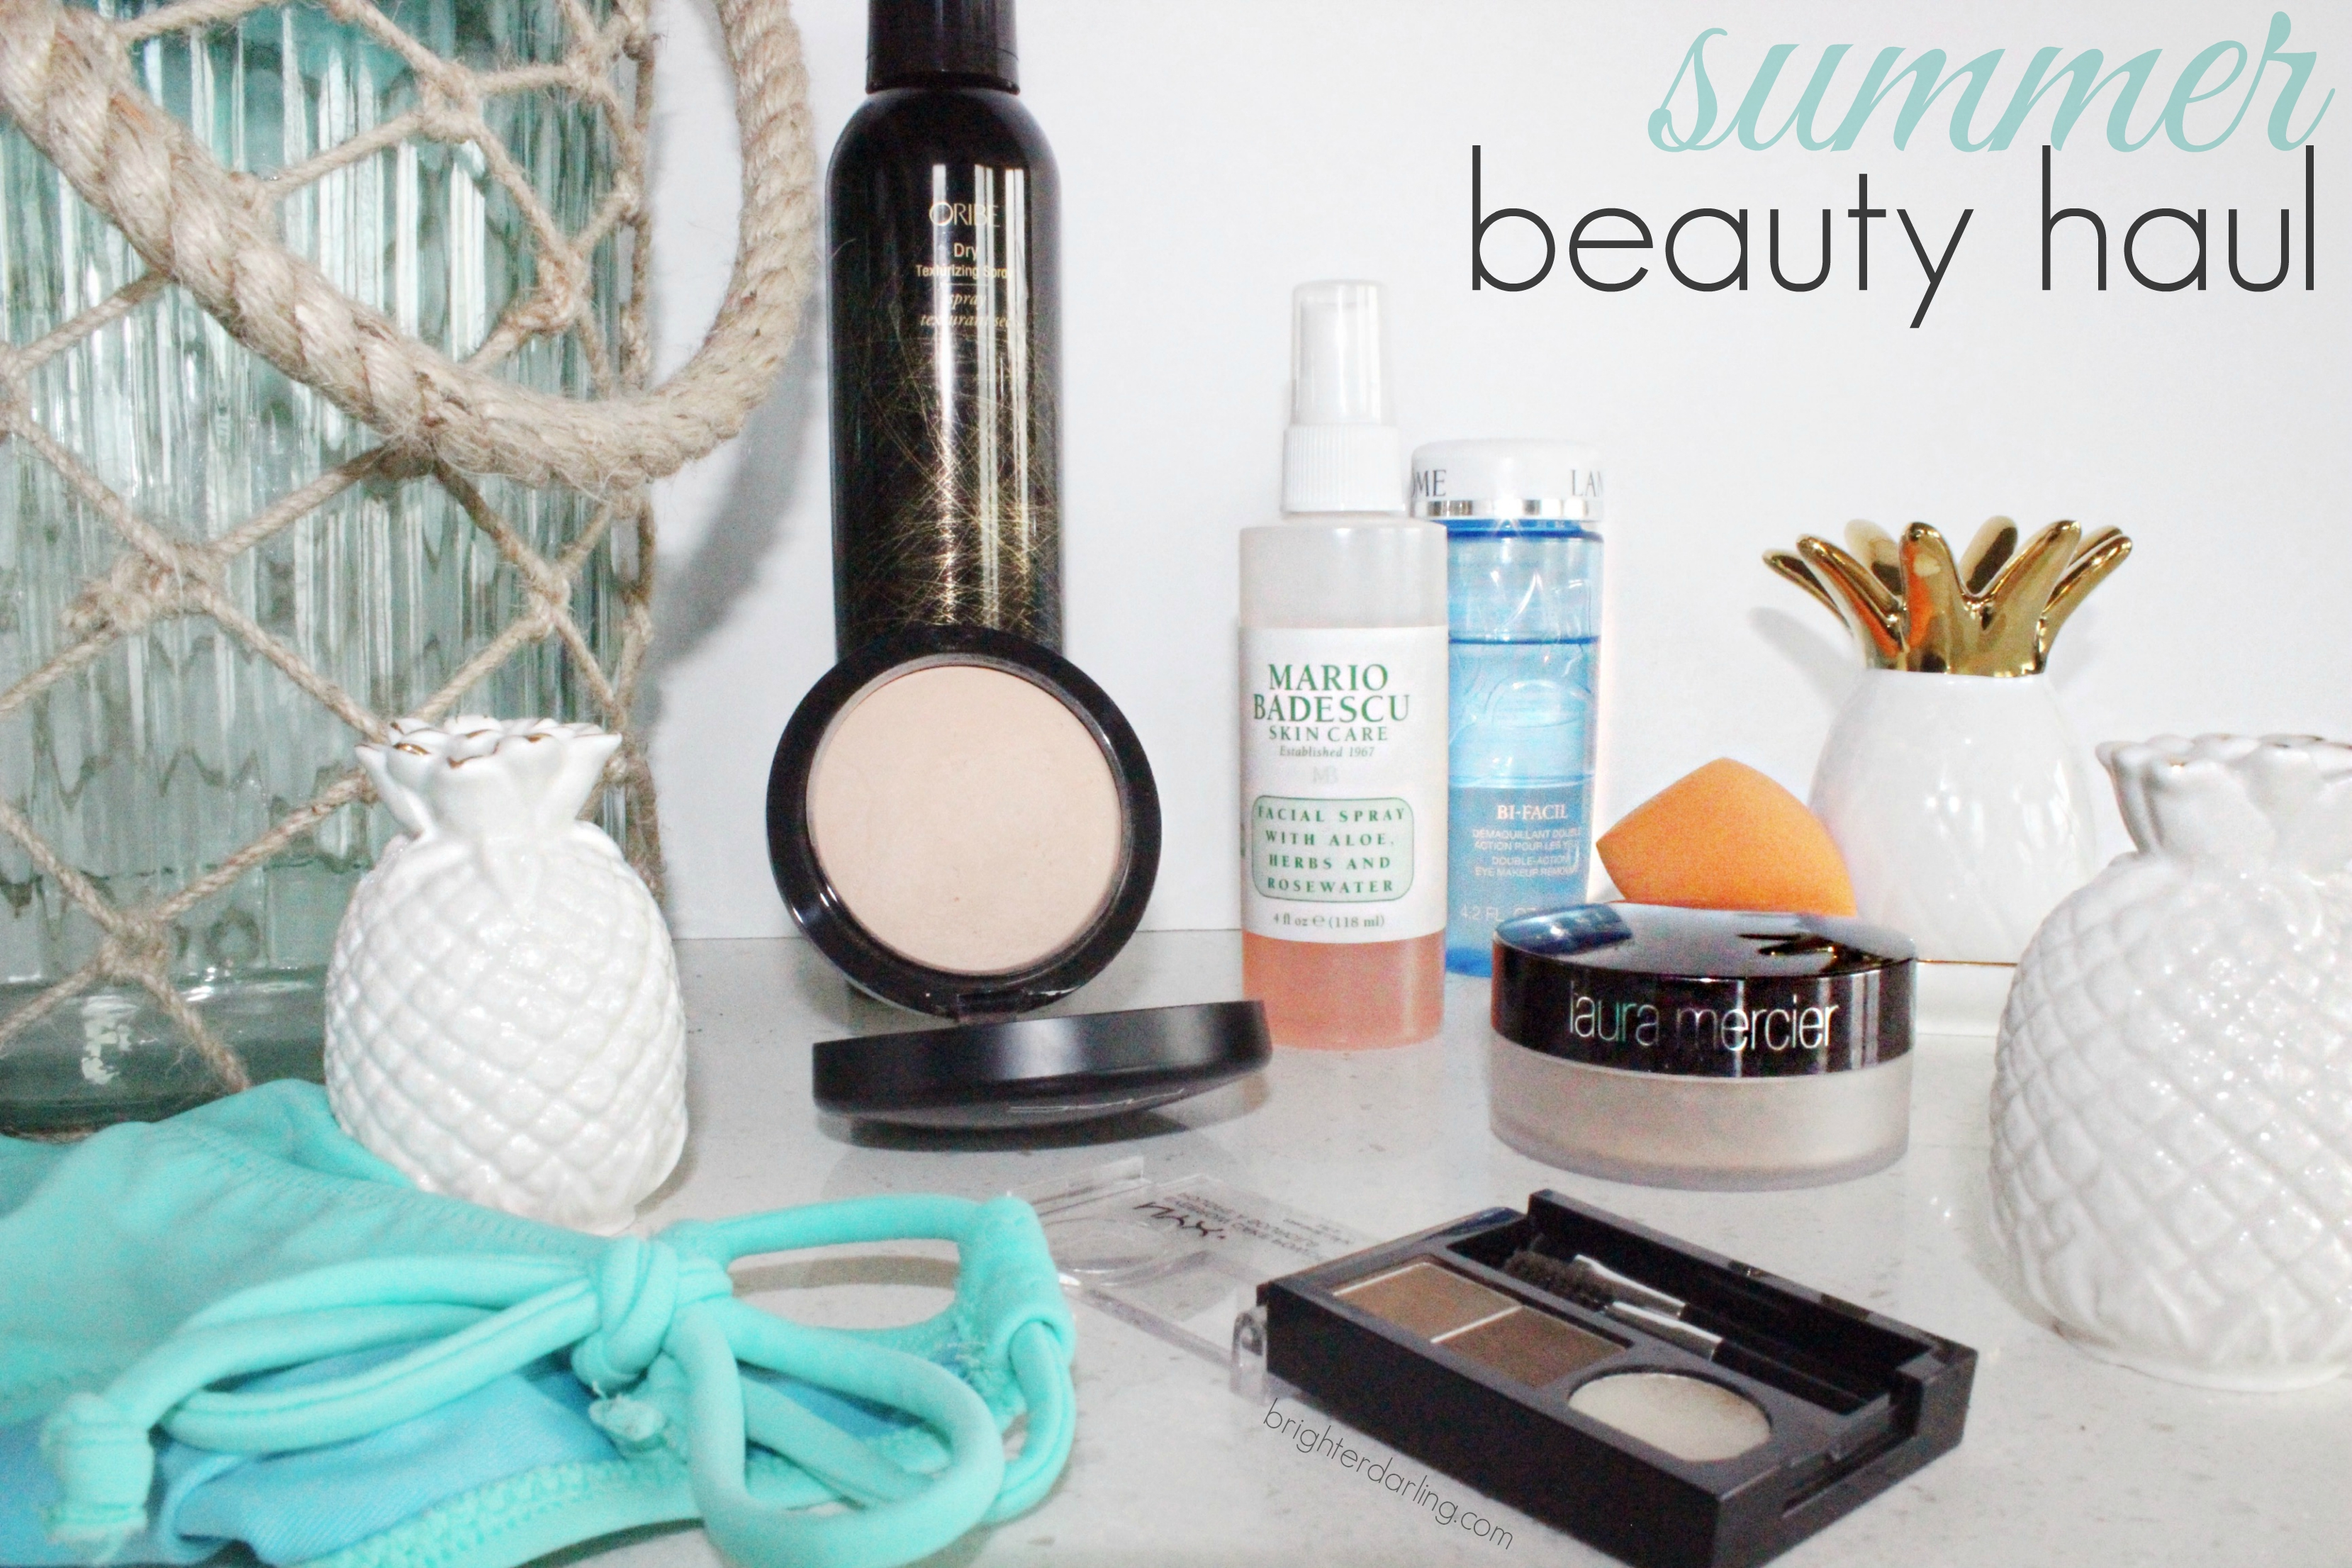 summer beauty haul| Oribe MAC NYX Laura Mercier Lancome Mario Badescu Real Techniques | Brighterdarling.com